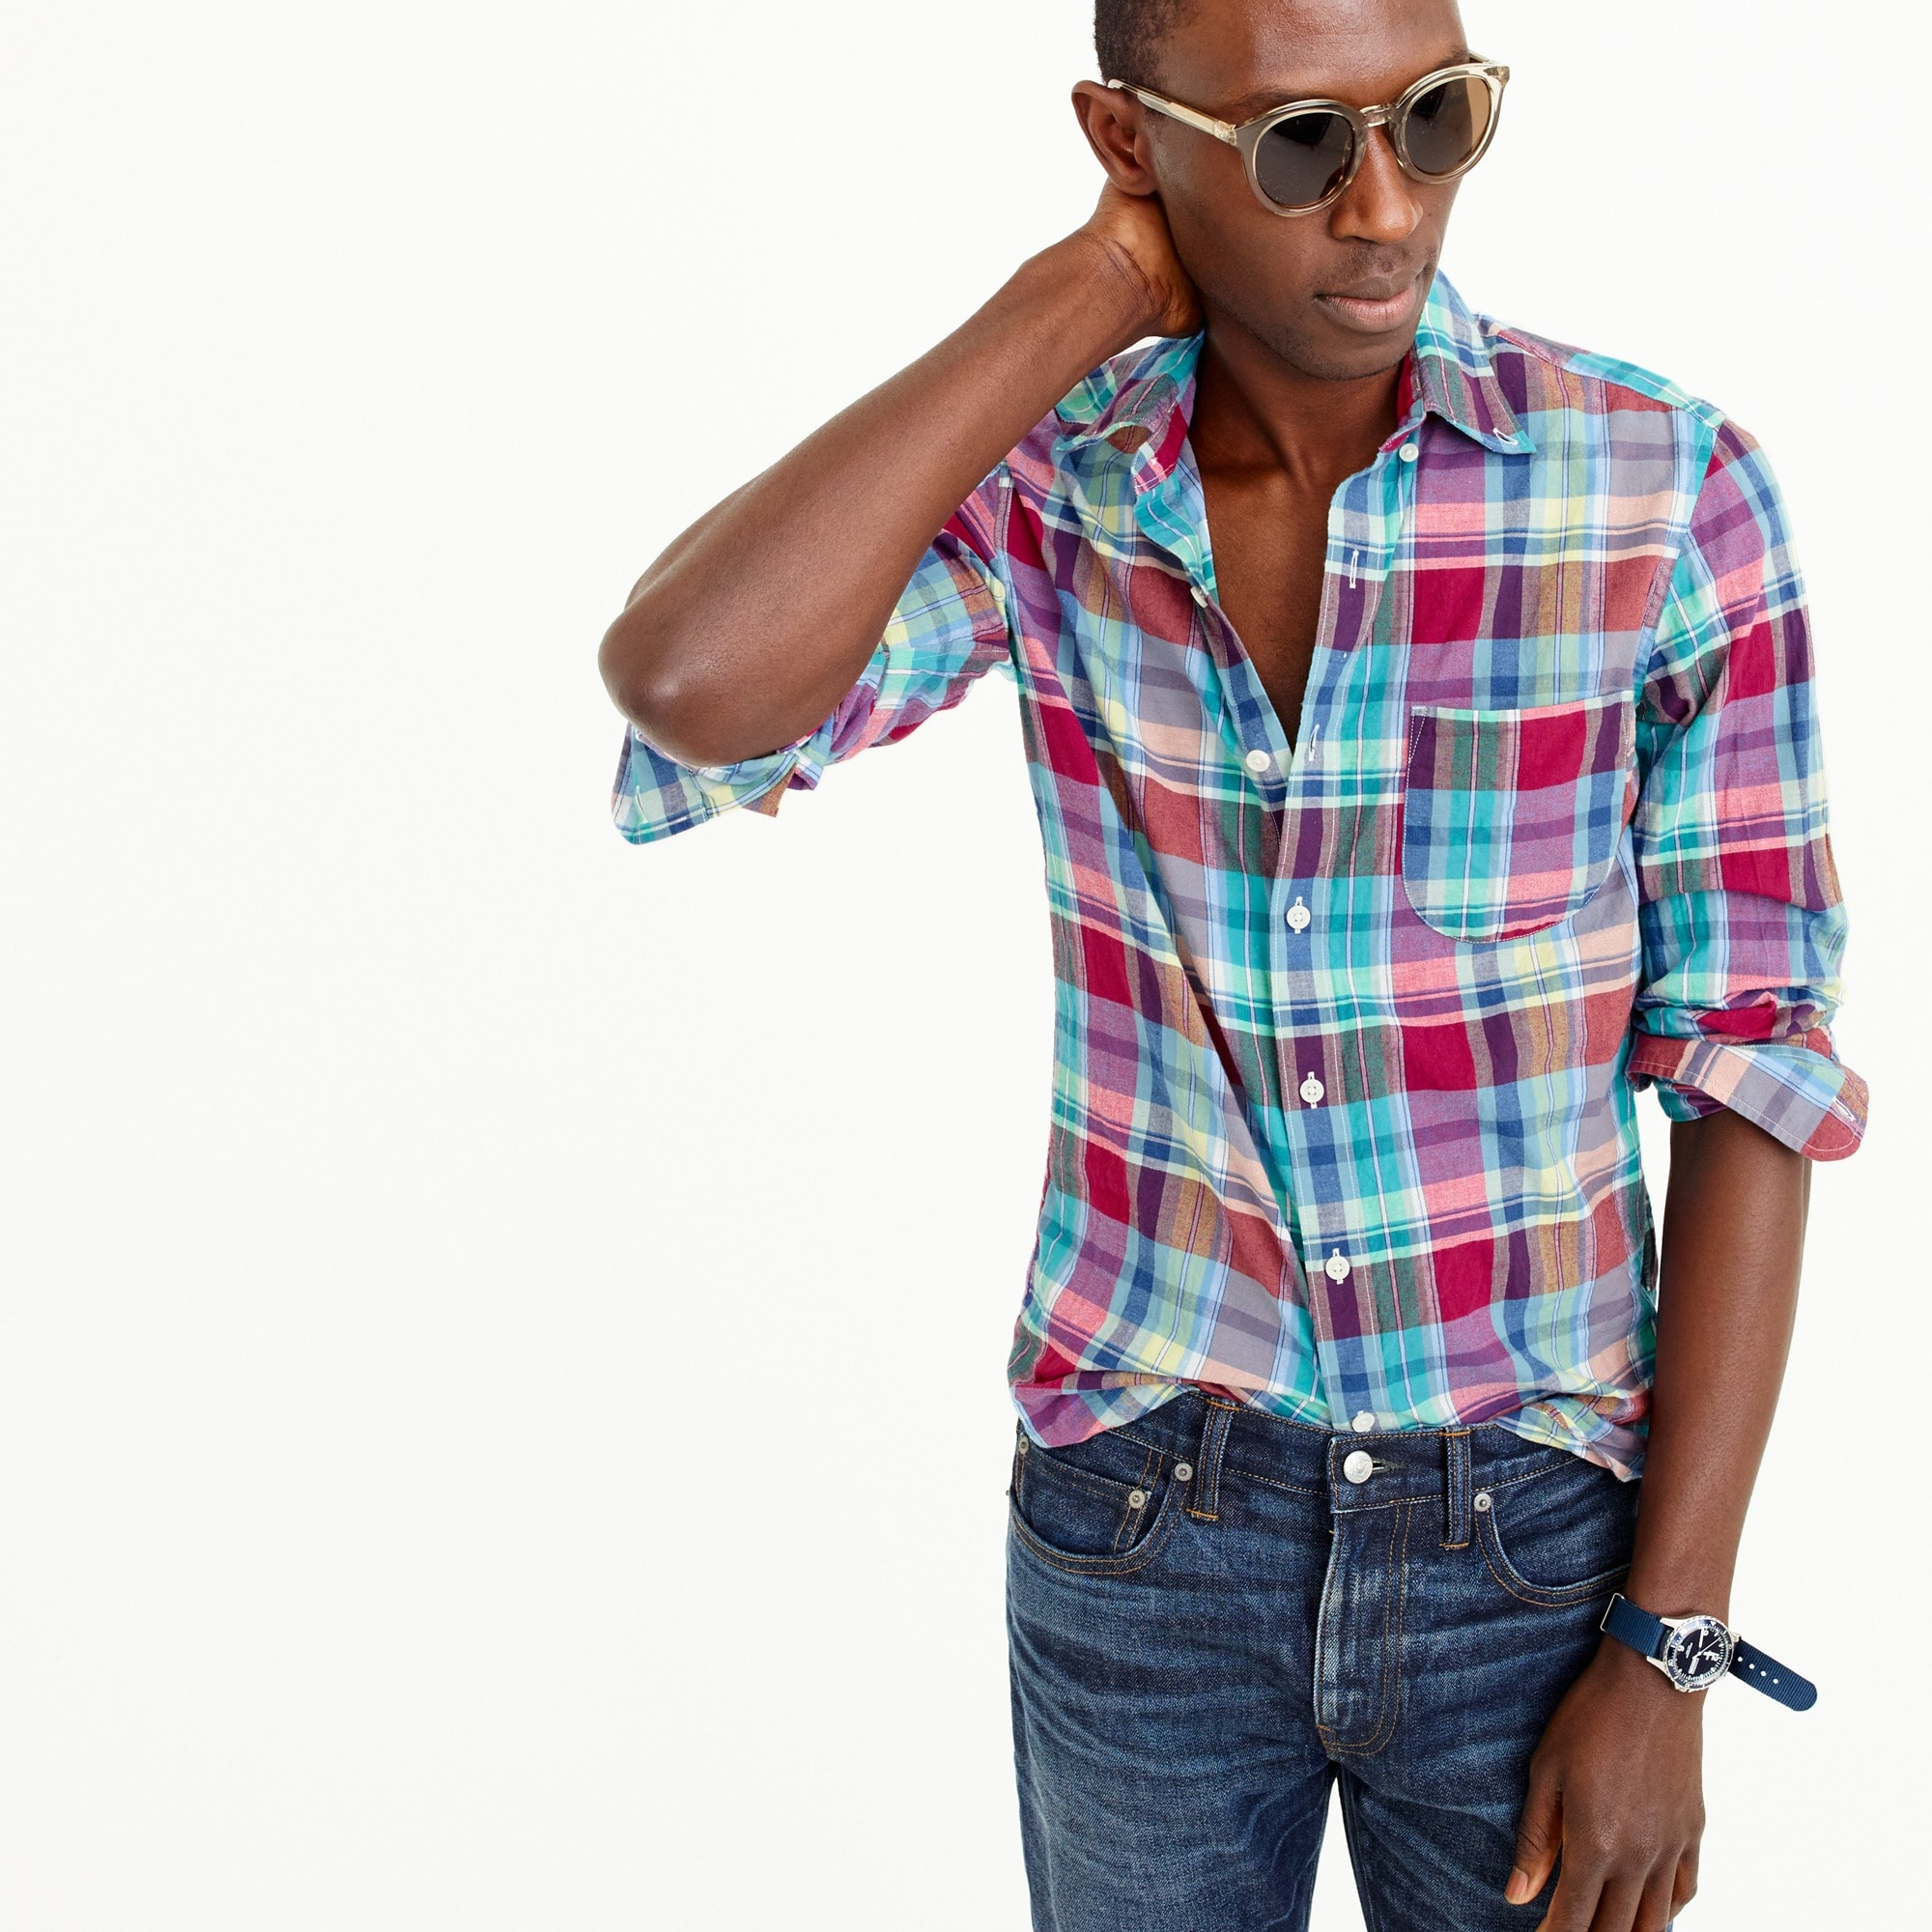 Indian madras shirt in red and teal plaid